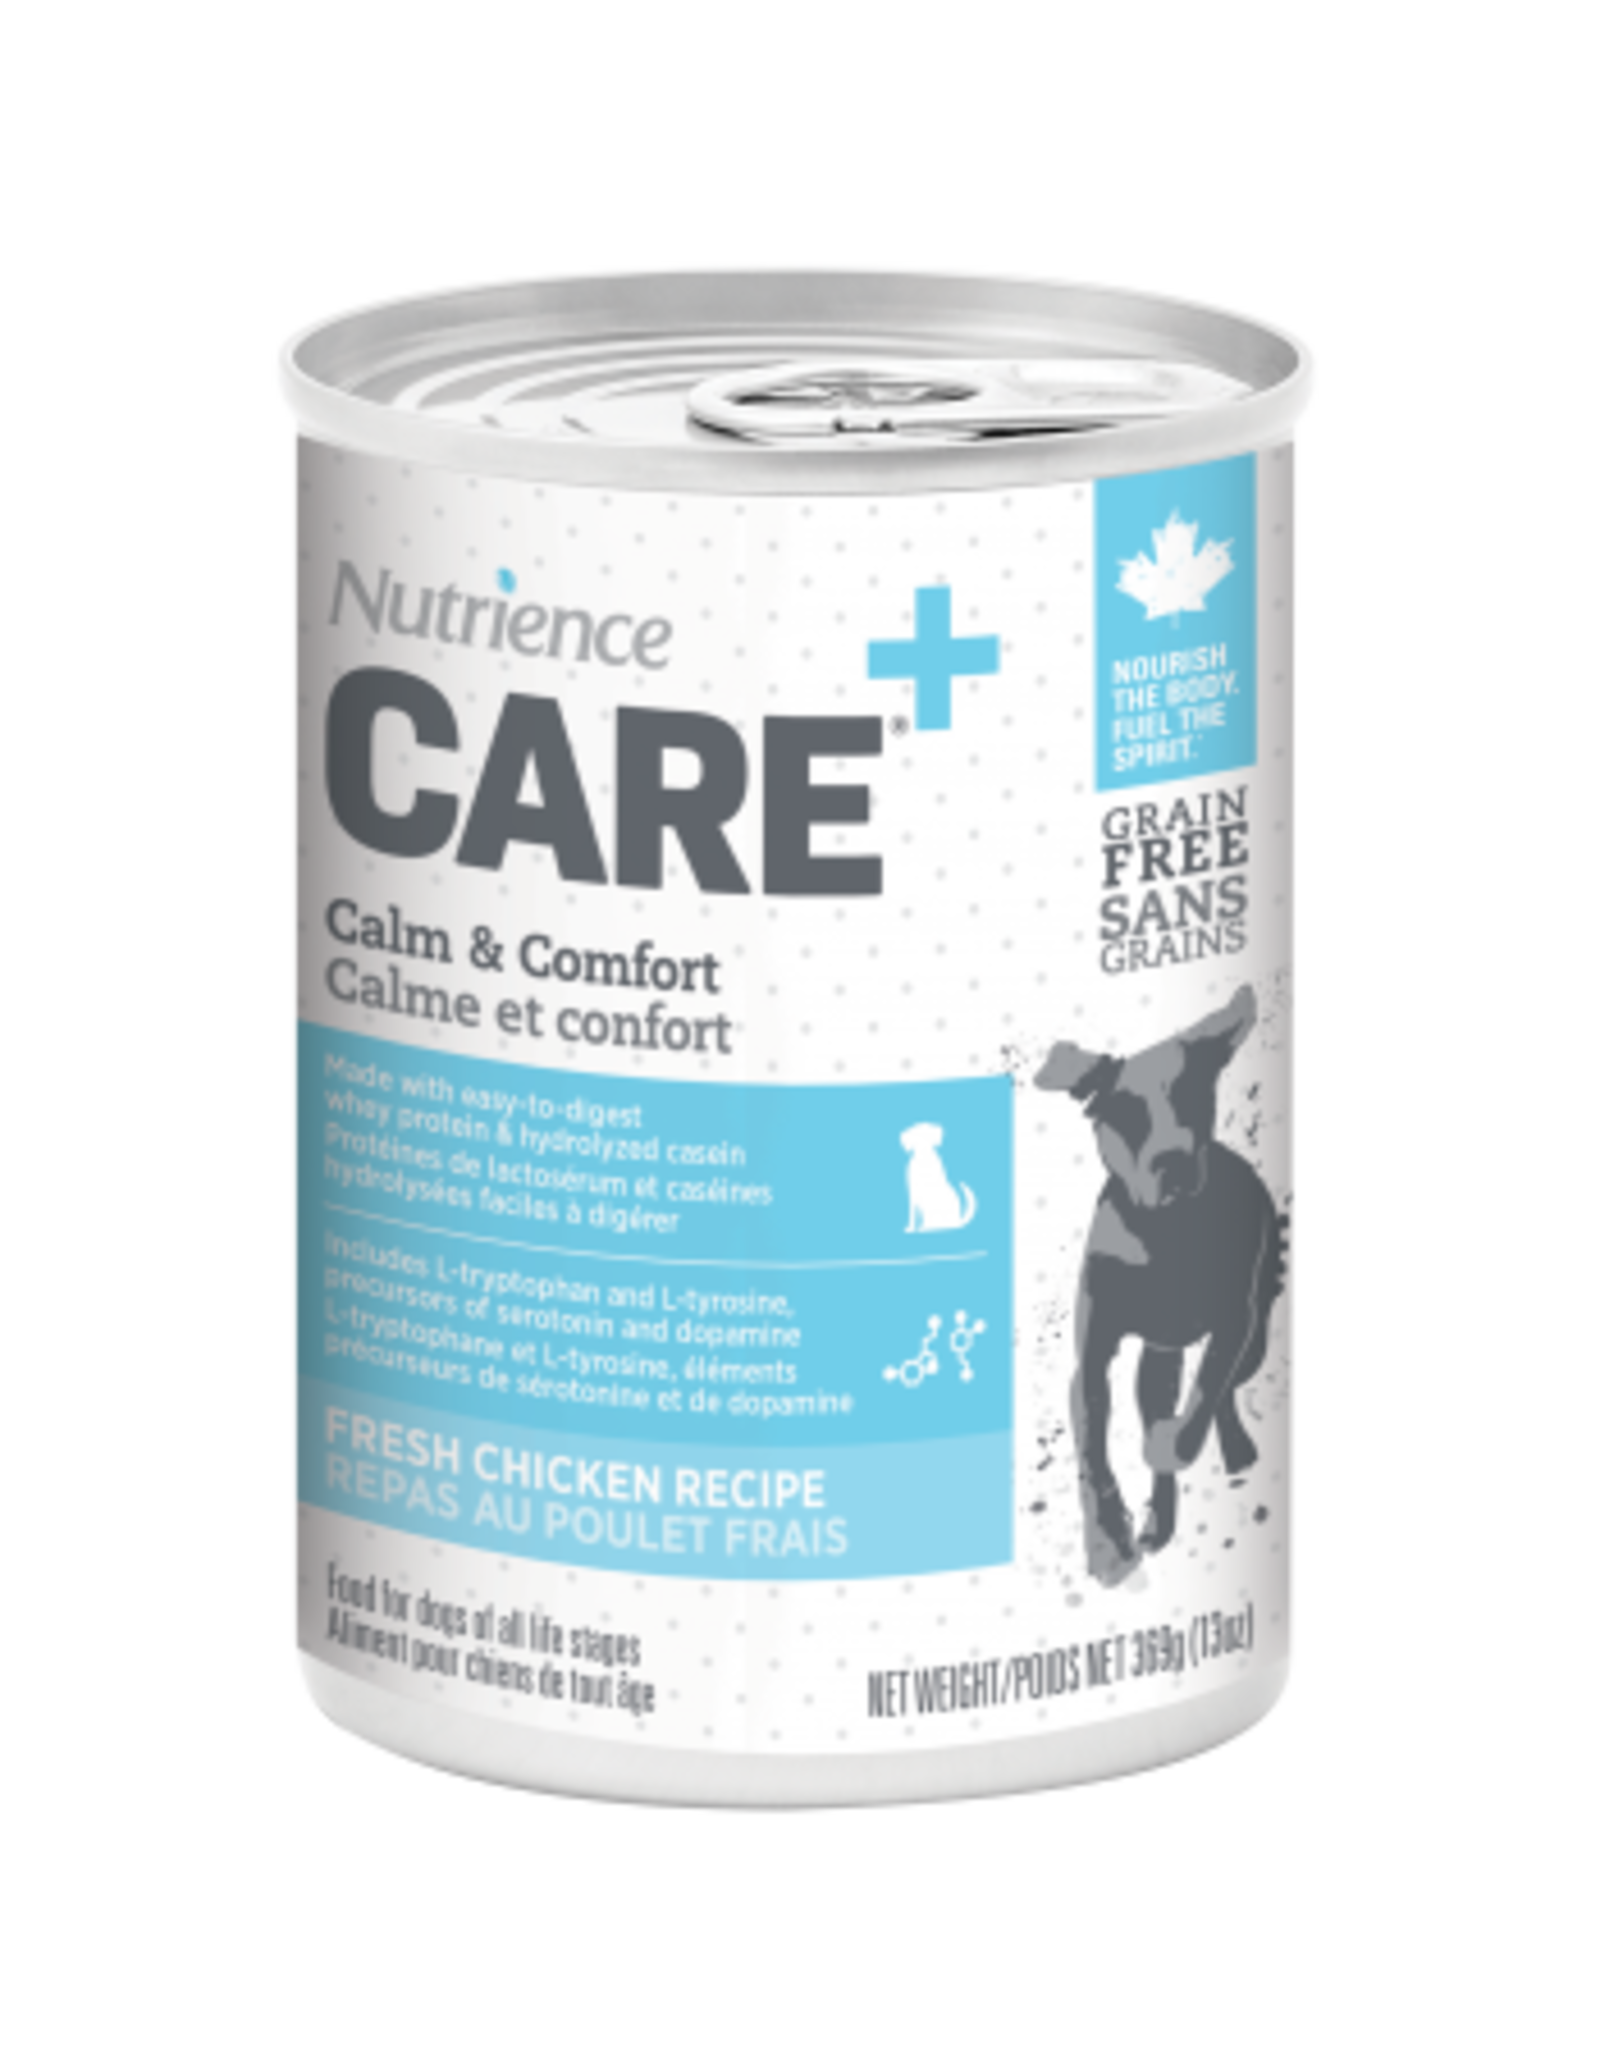 Nutrience Nutrience Dog Care Recipes Pate Canned Food